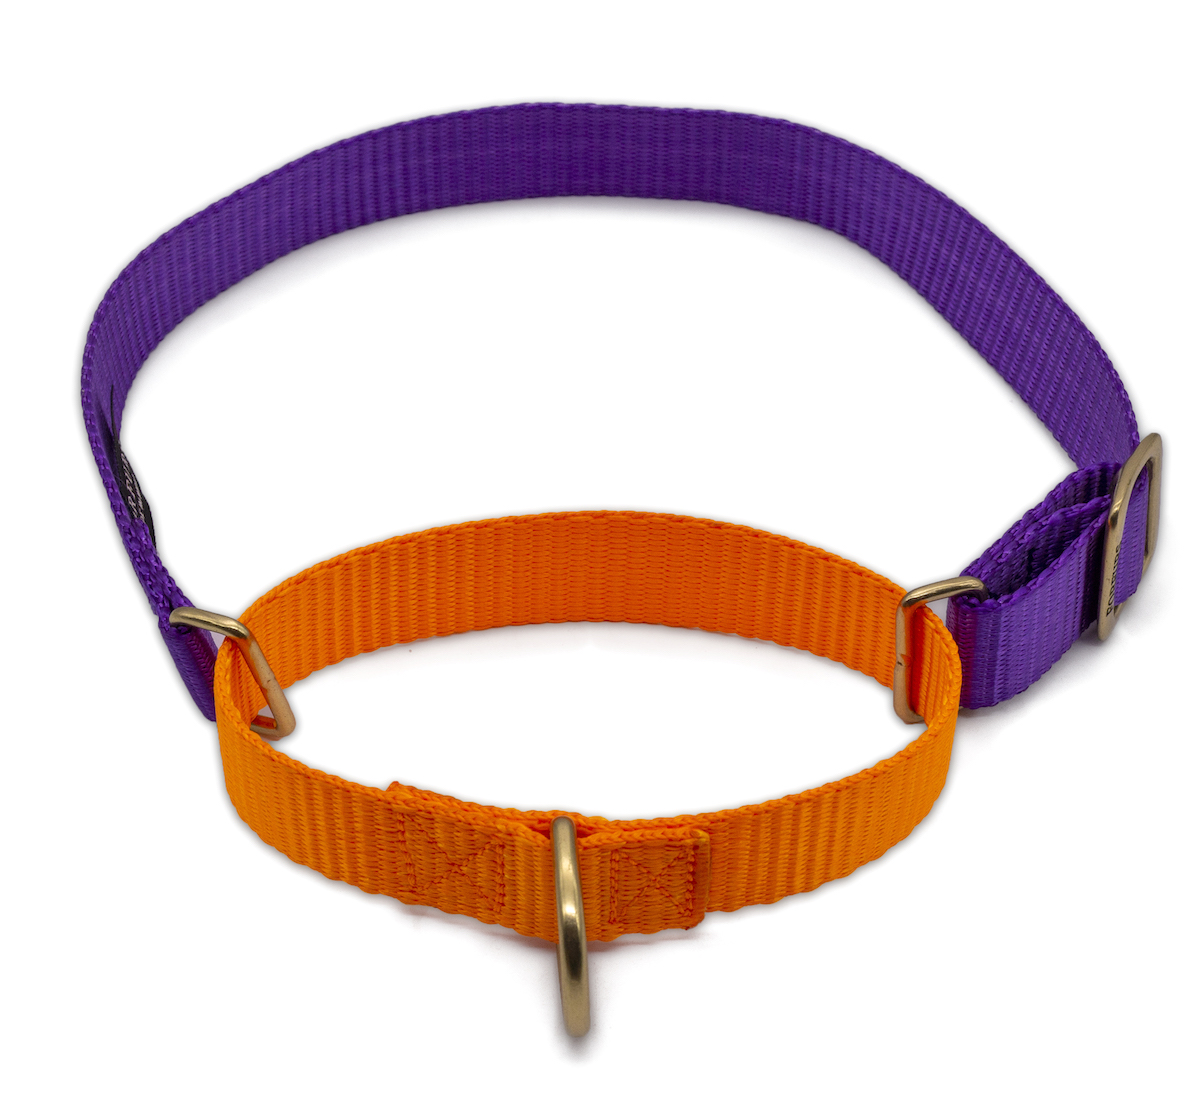 Forfurs Duo Martingale Collar Ultra Violet & Neon Orange - Large